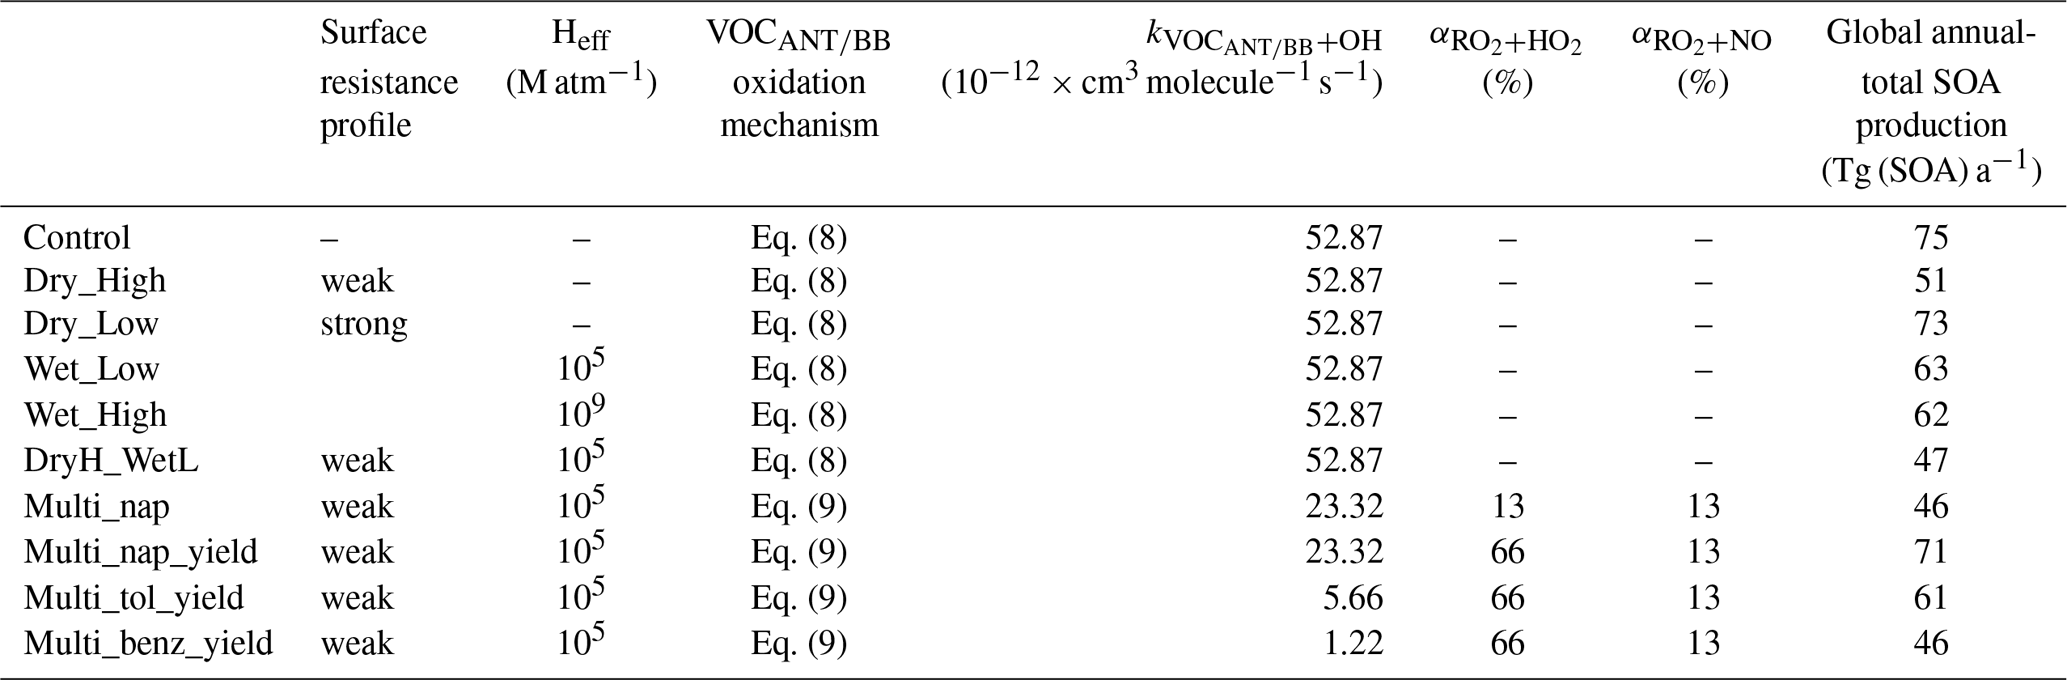 GMD - The roles of volatile organic compound deposition and